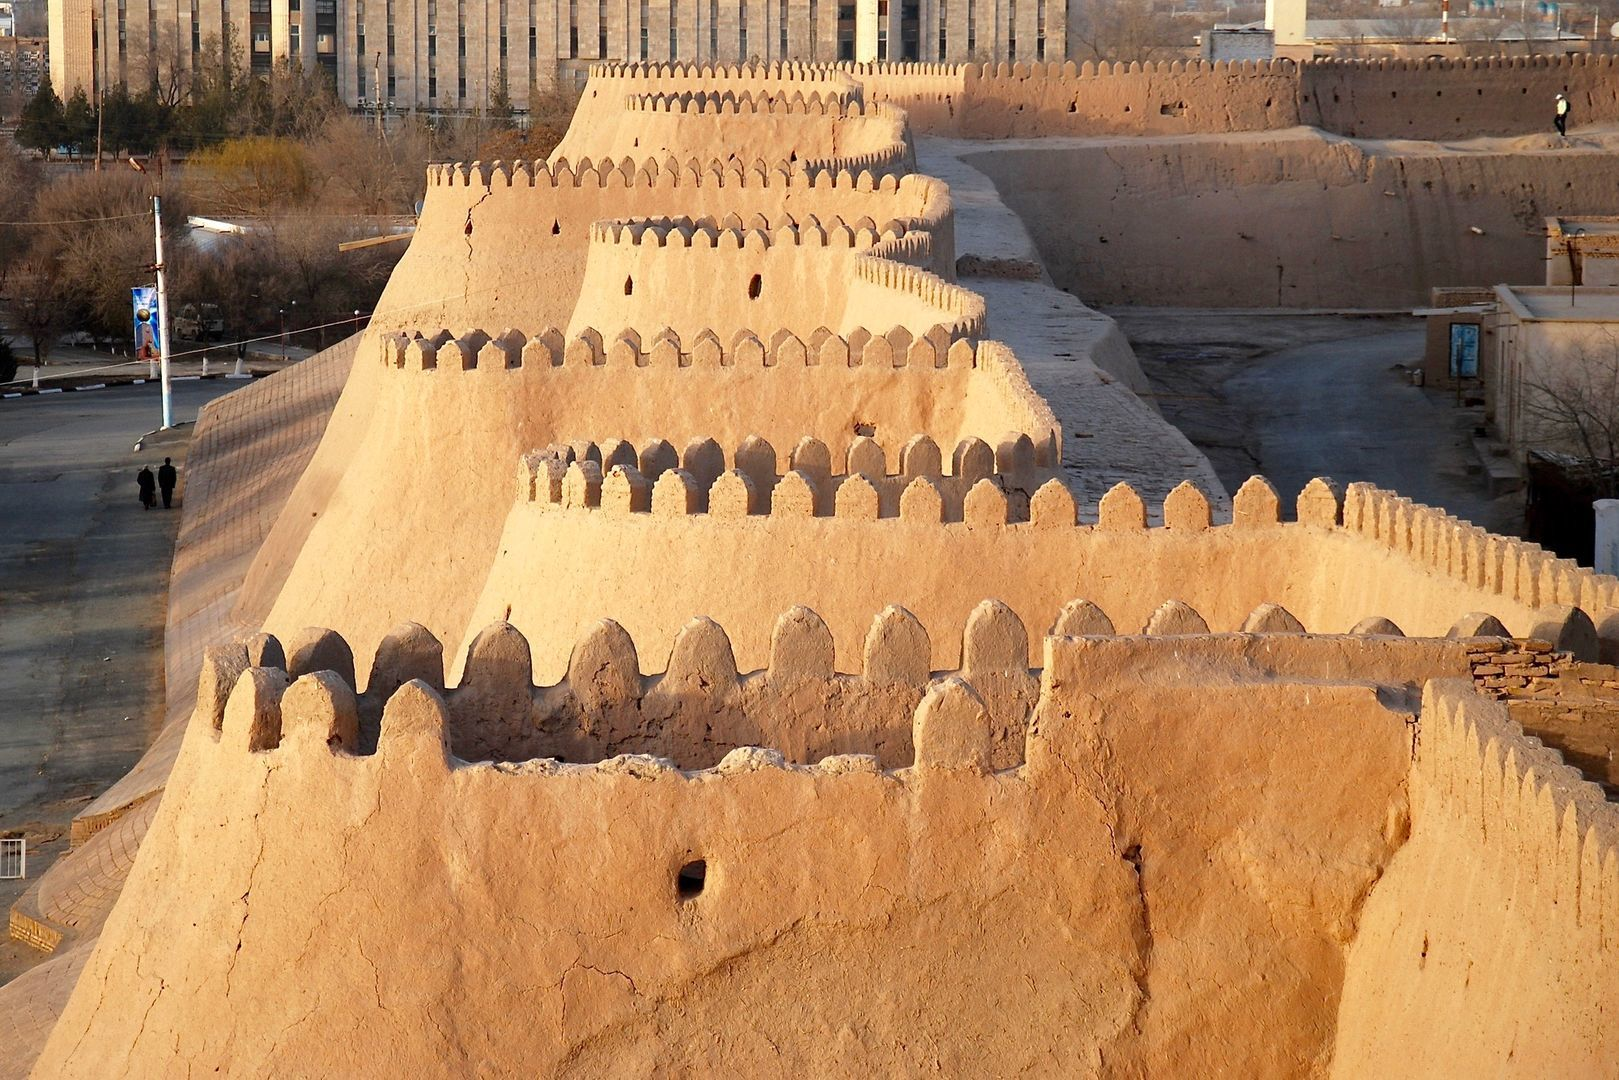 Khiva outer wall made of plastered mud